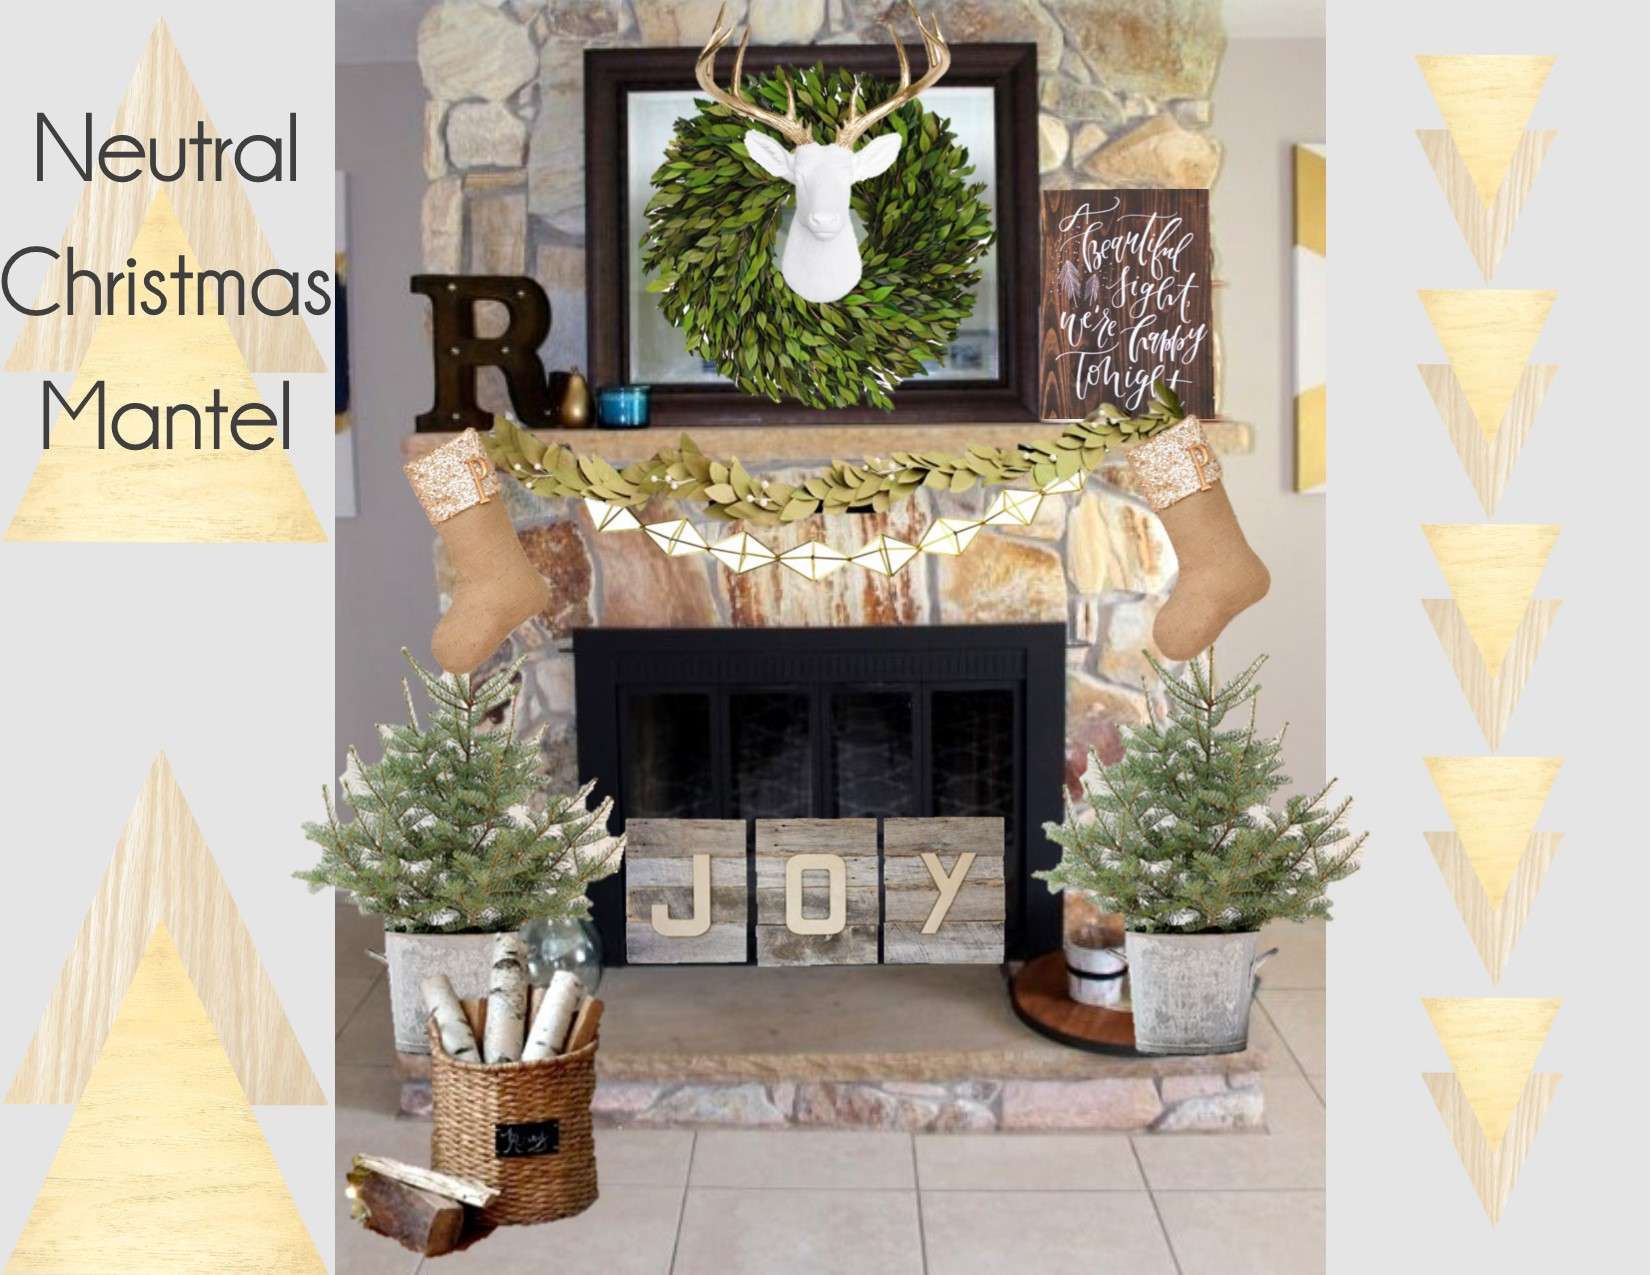 Neutral Christmas decor